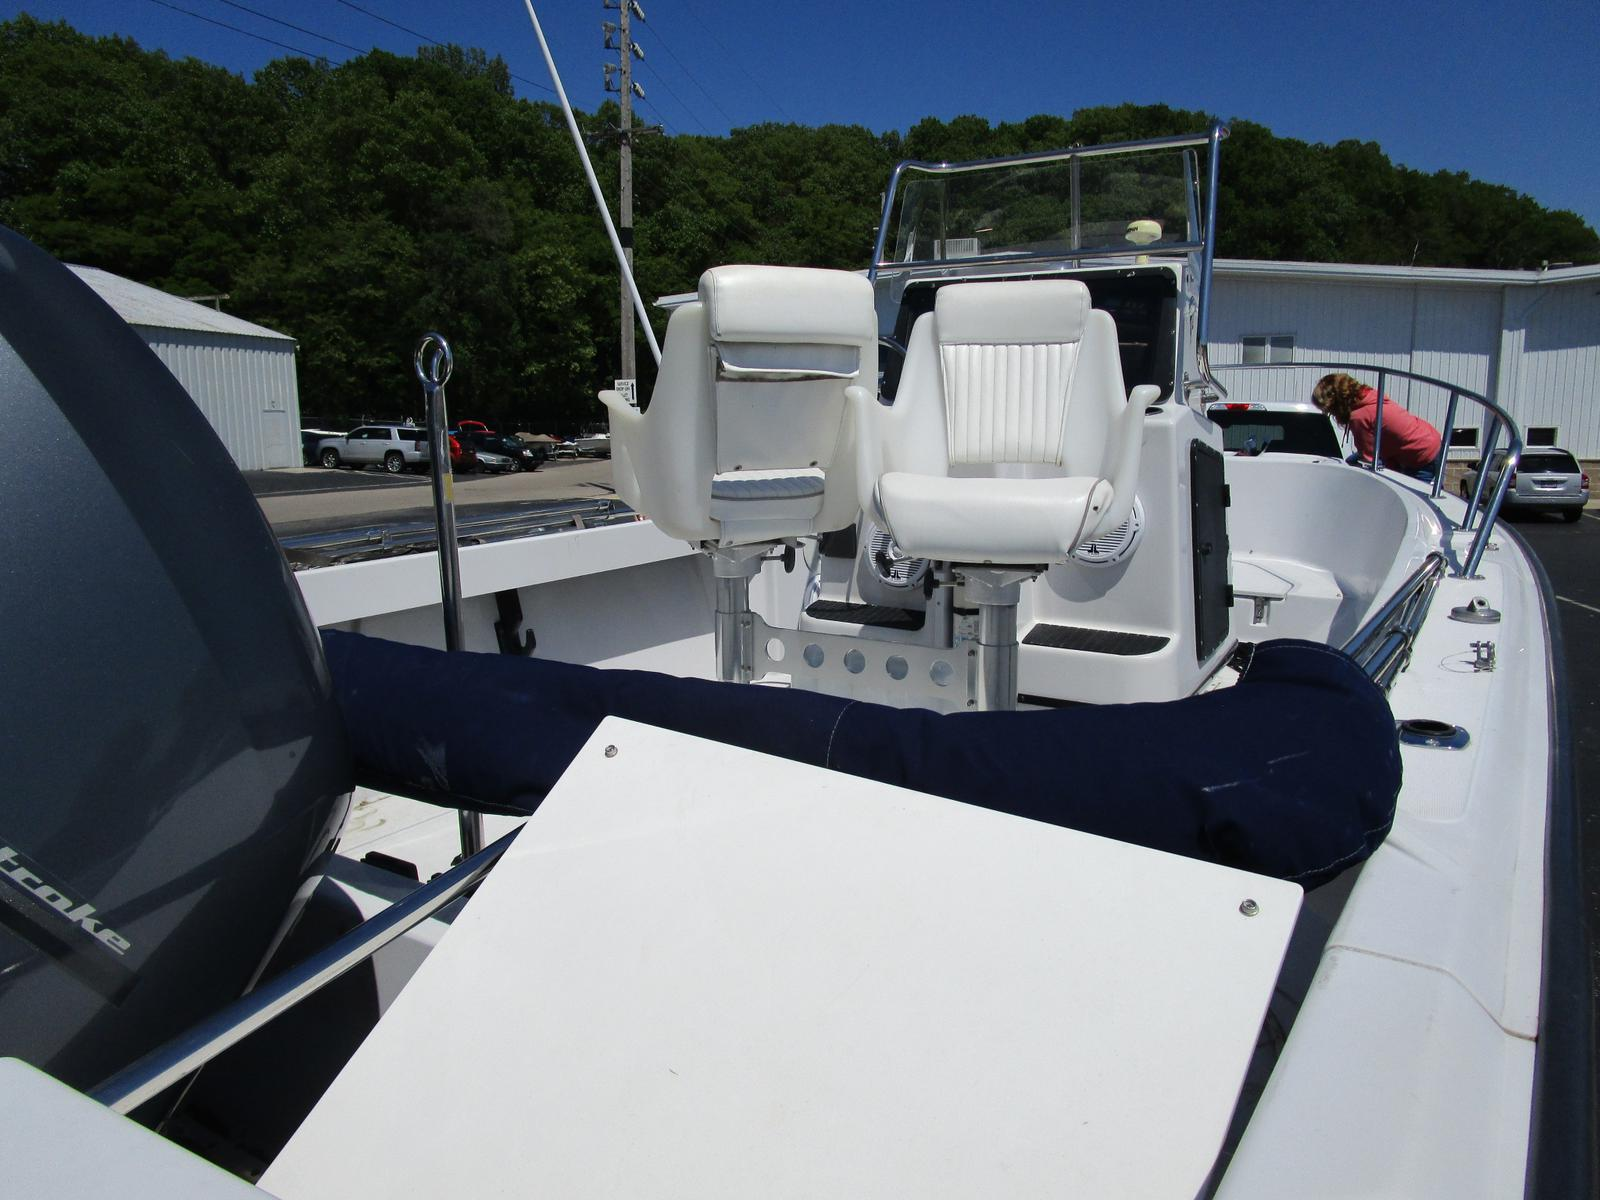 1996 Boston Whaler boat for sale, model of the boat is 190 Outrage & Image # 2 of 9